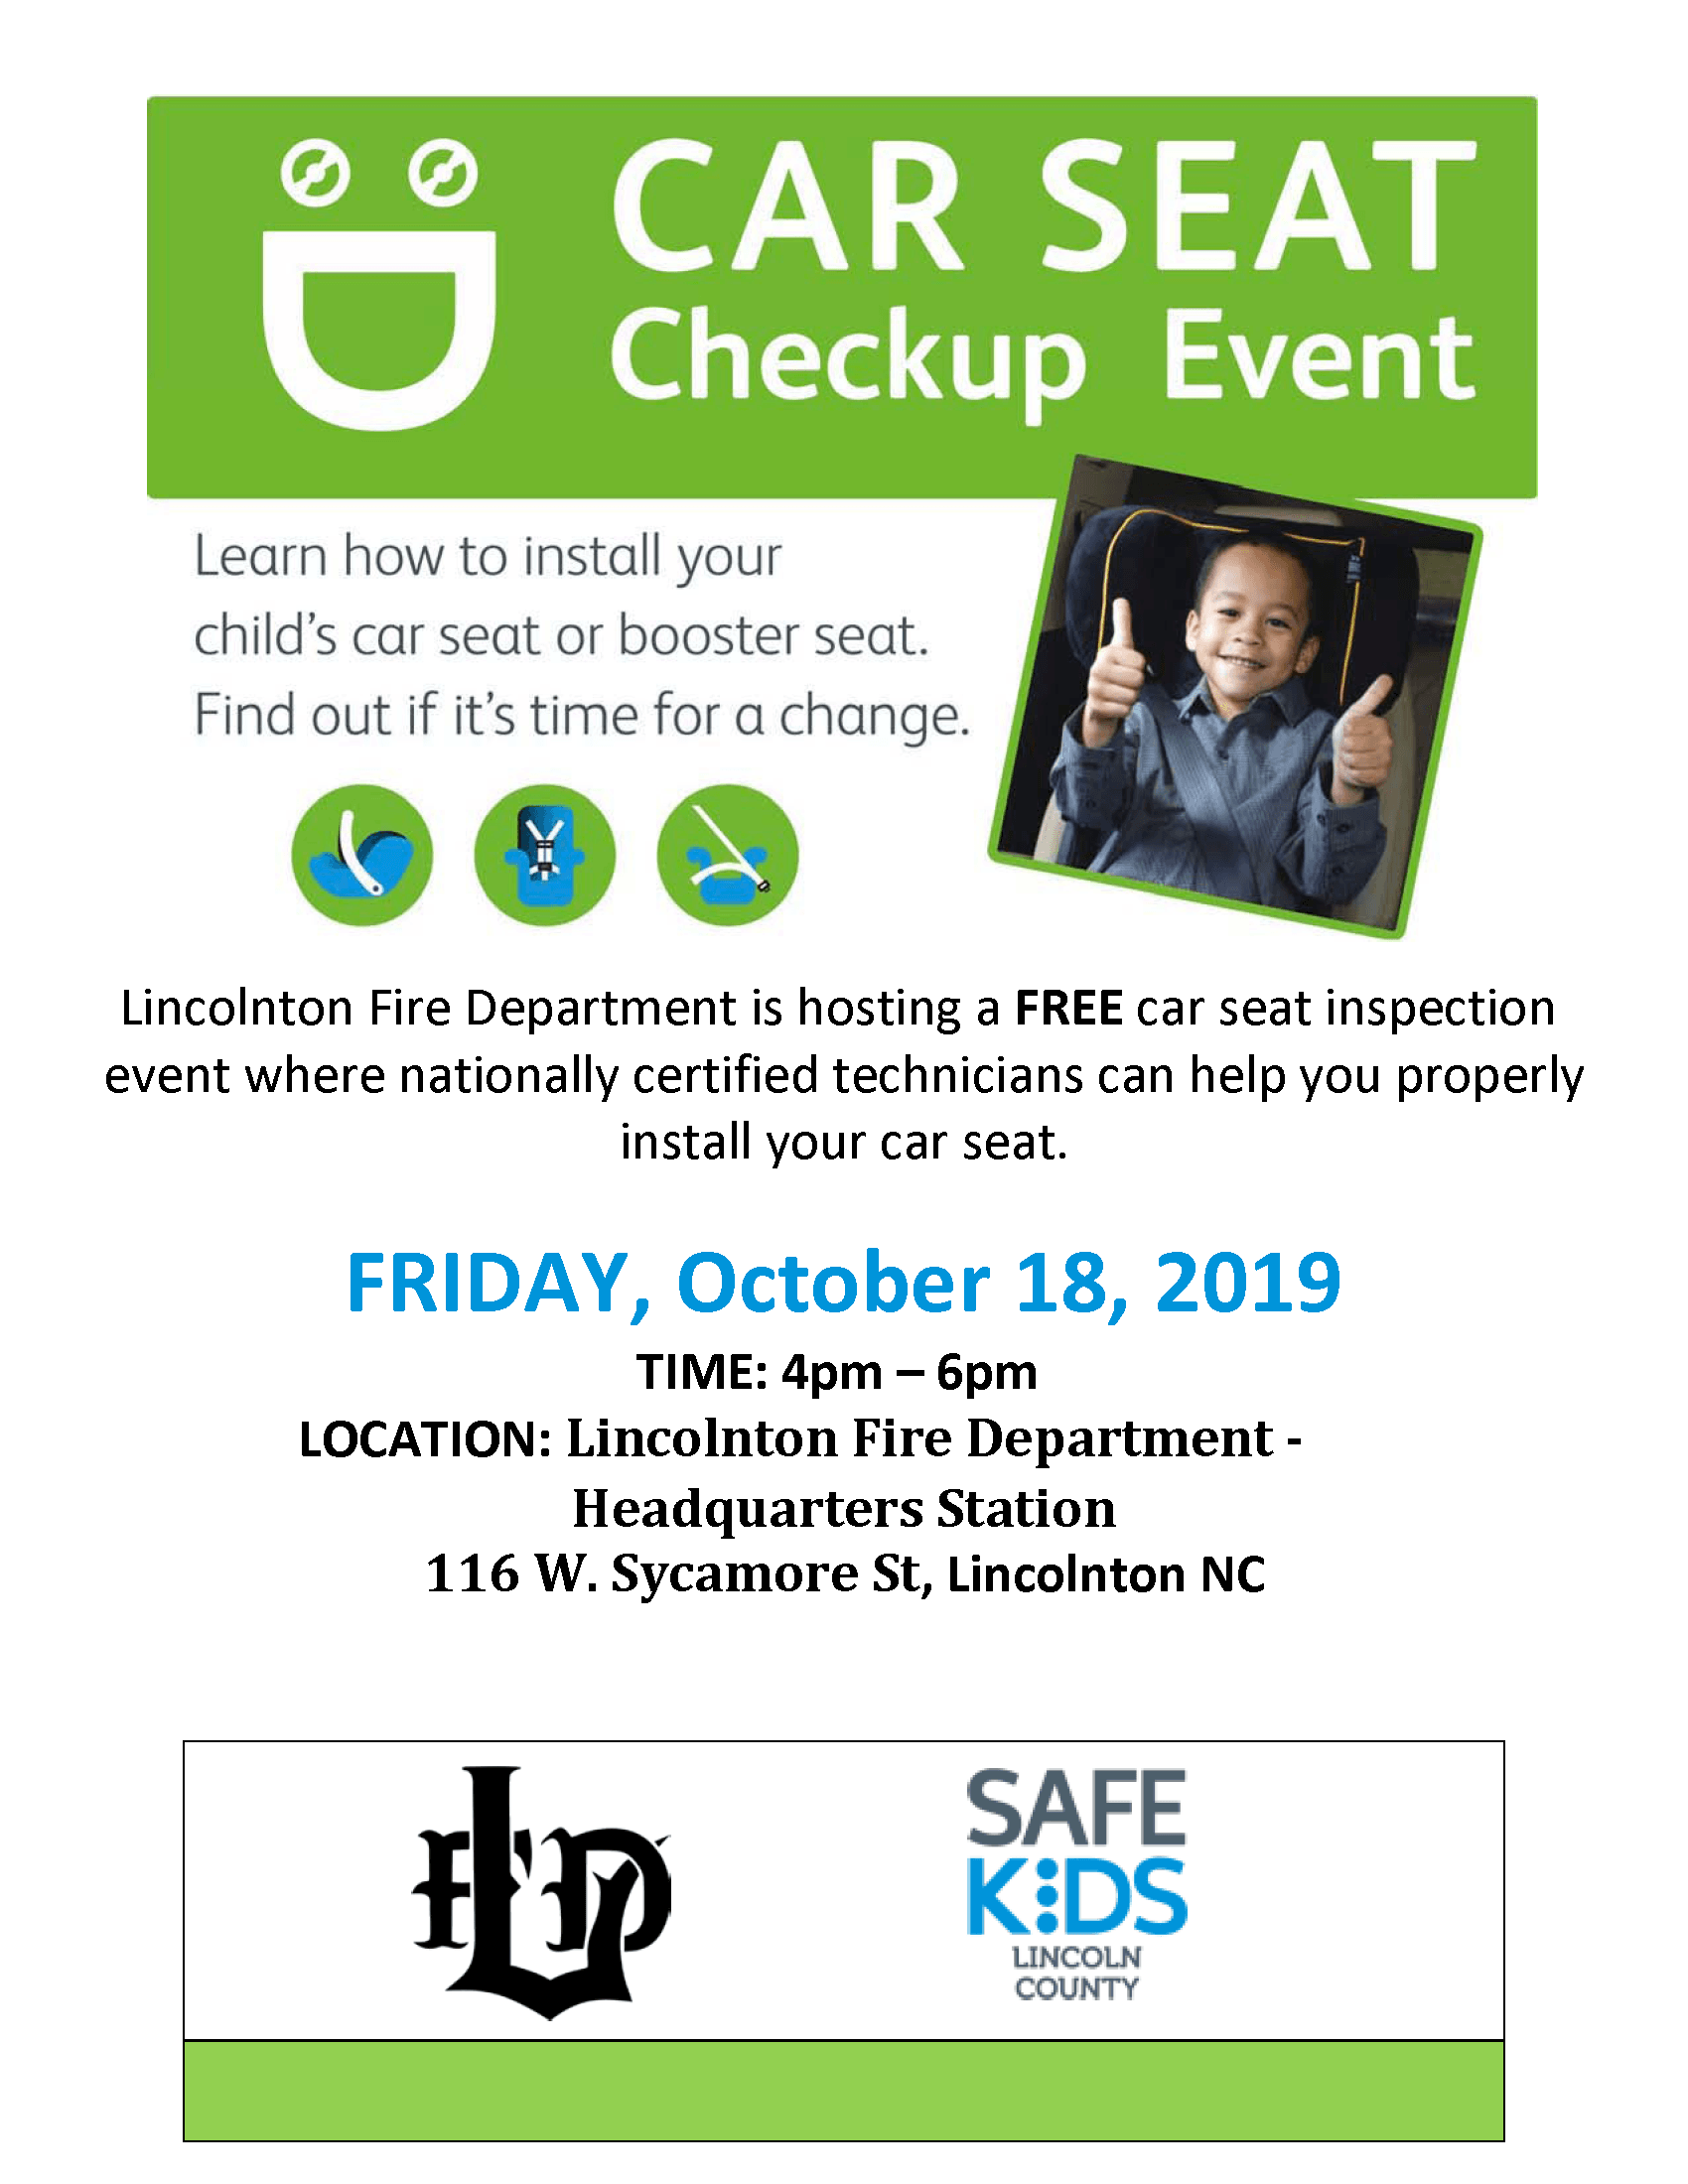 Car Seat Event Flyer 10-18-19